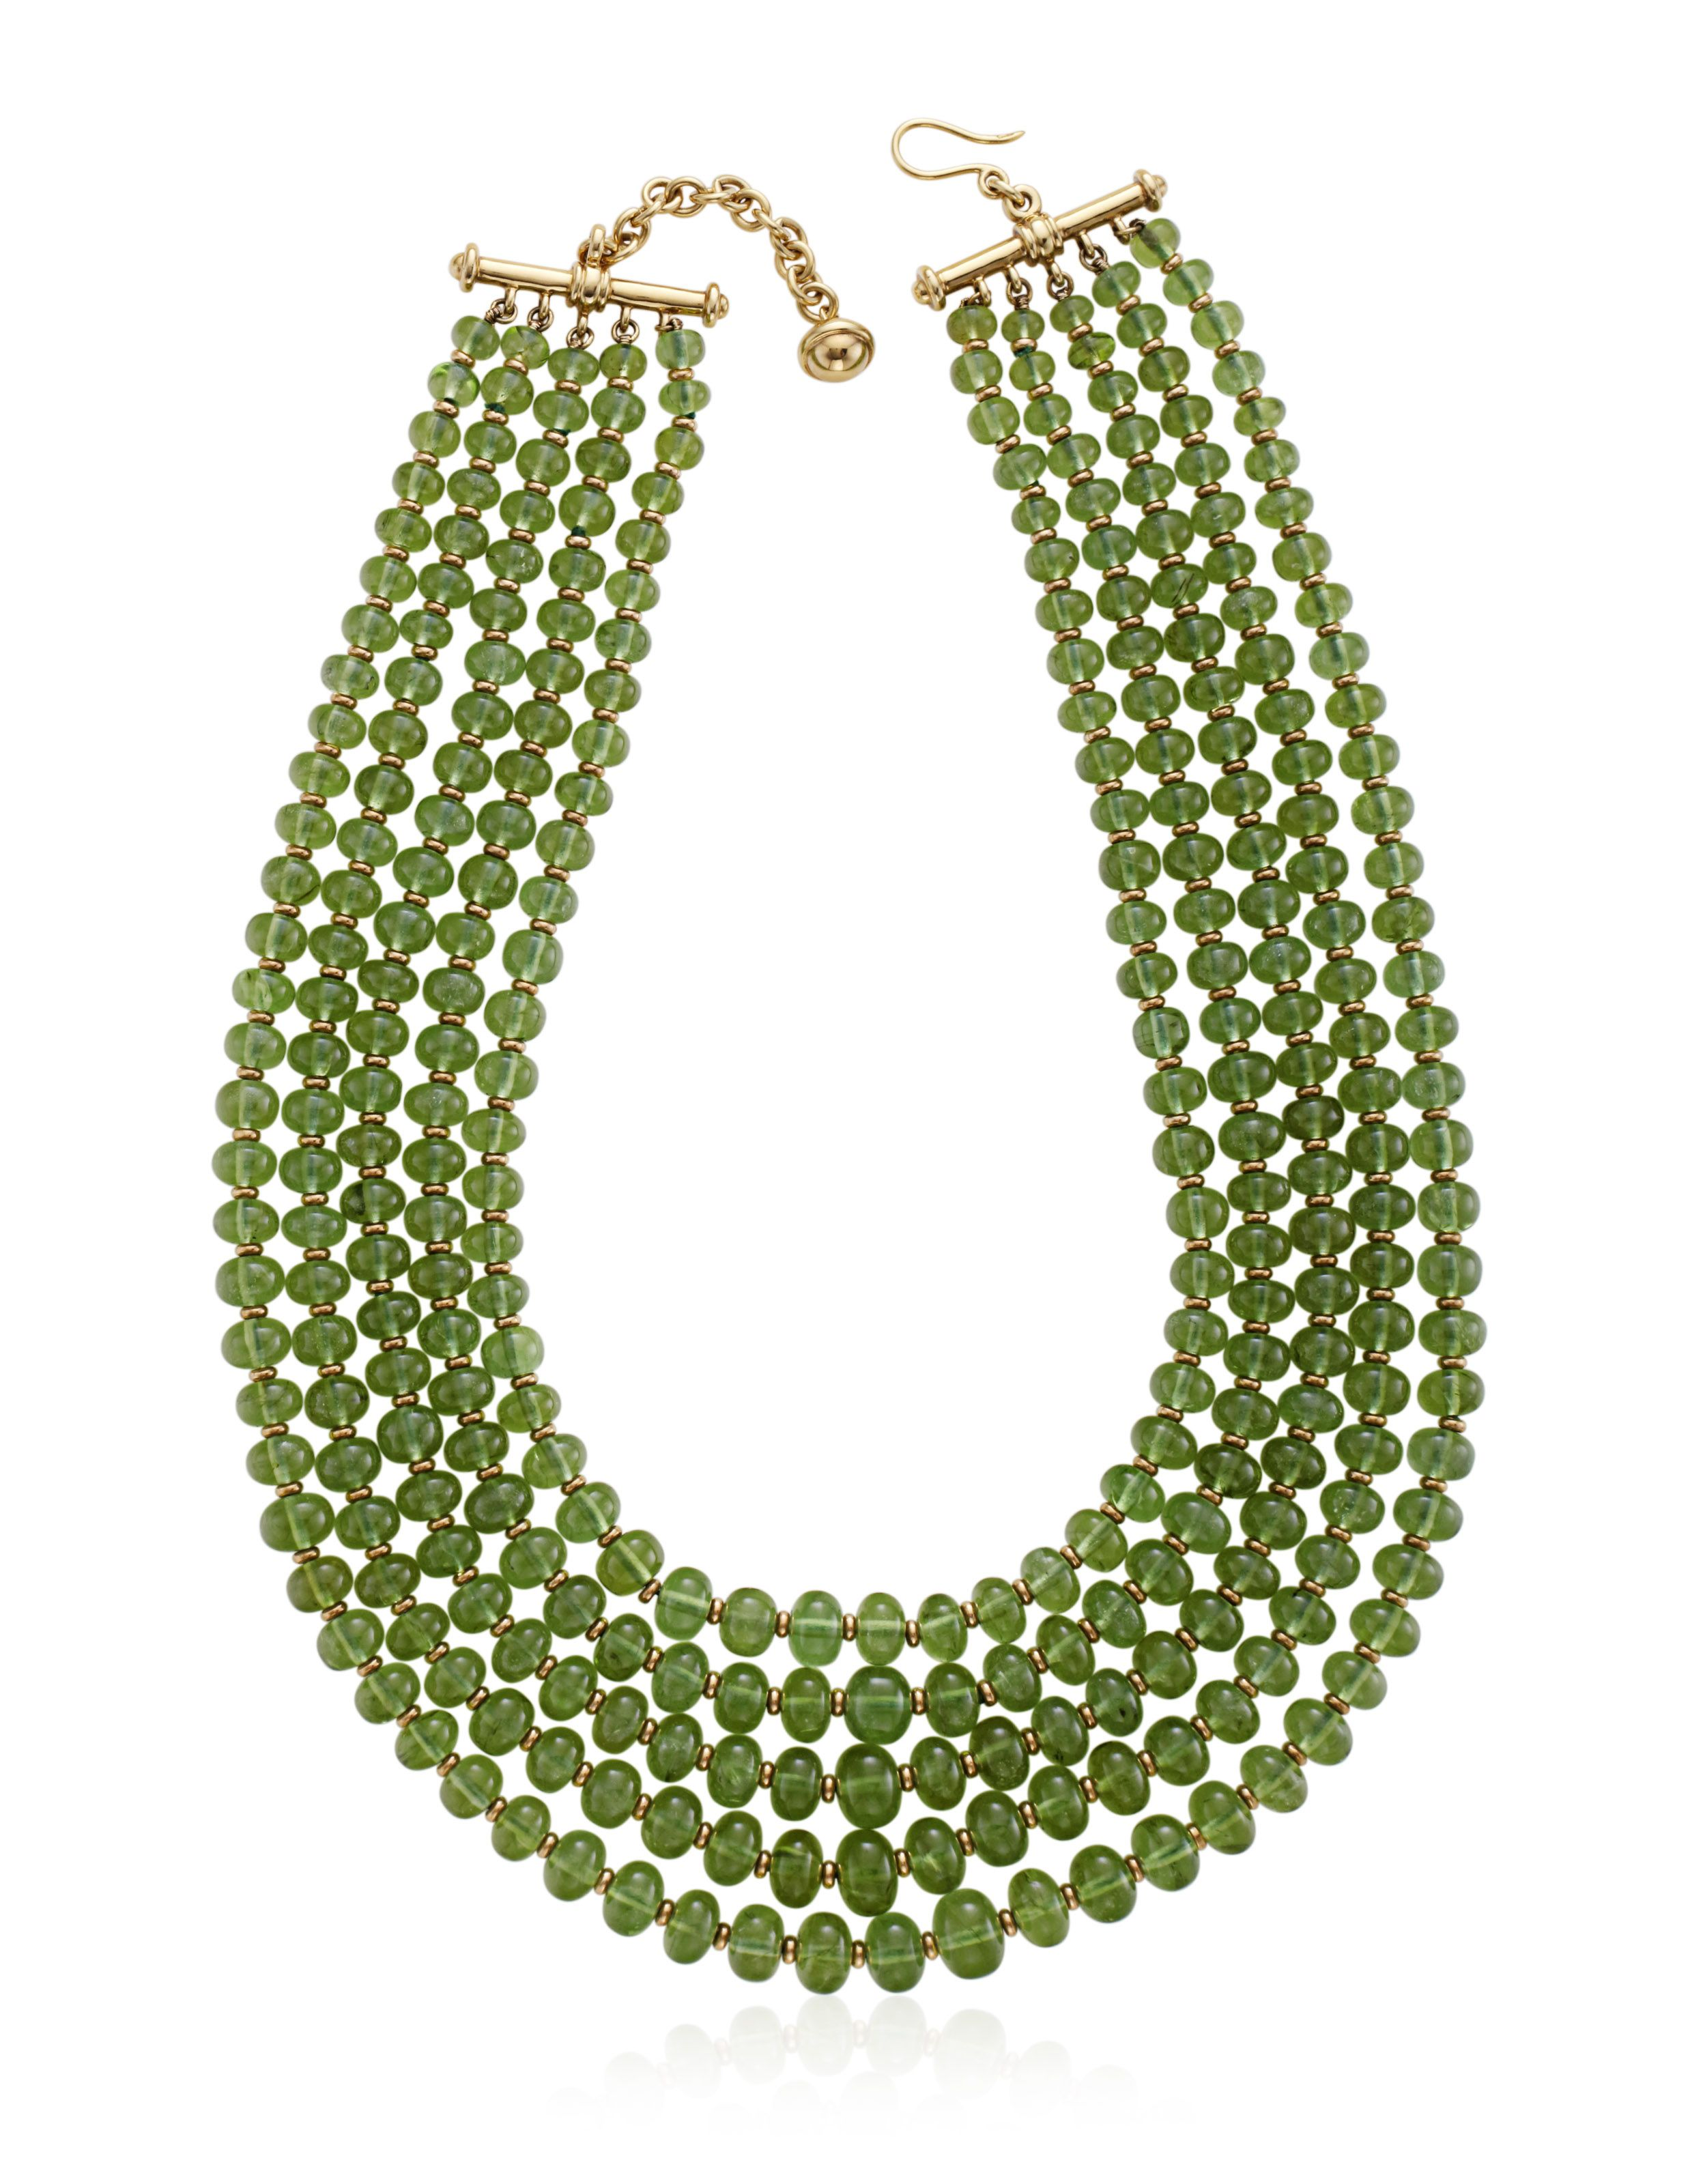 64369e315 TIFFANY & CO. PALOMA PICASSO PERIDOT BEAD NECKLACEDesigned as five strands  of peridot beads spaced by gold rondelles with a gold claspMetal: 18K  yellow ...